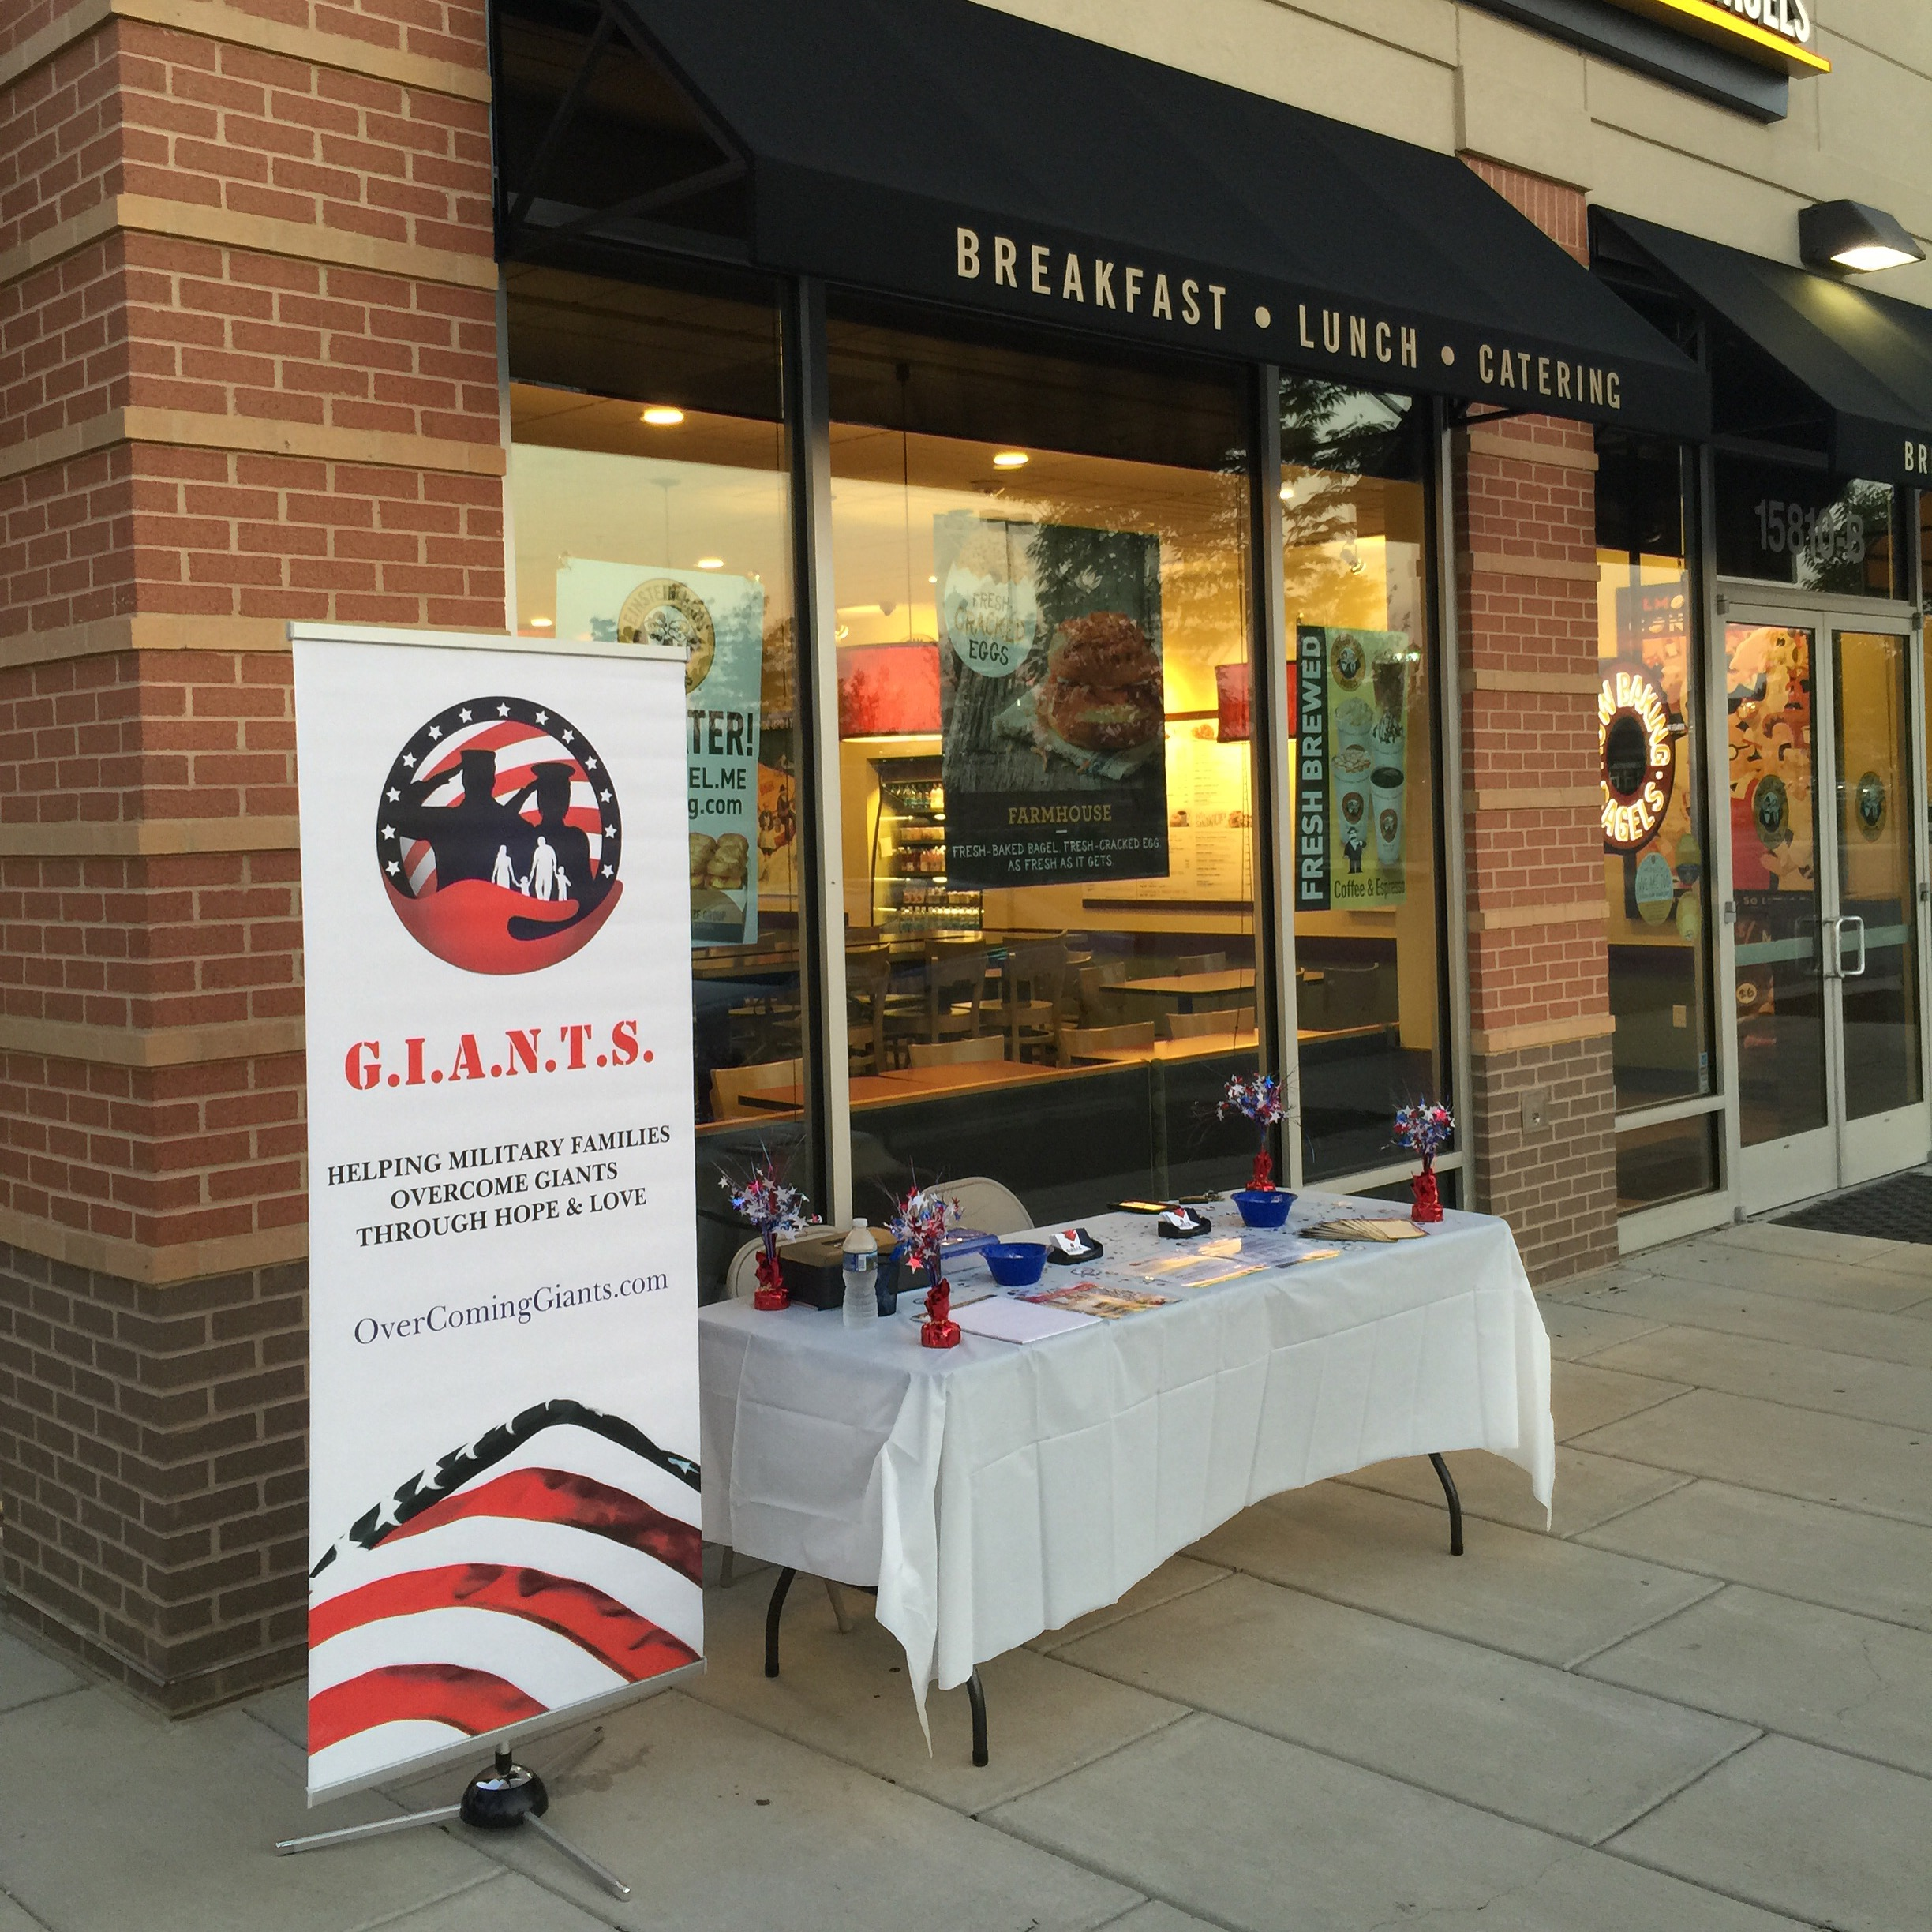 We are happy and thankful to have partnered with Einstein Bros. Bagels September 24, 2016 located at Brandywine, MD for our Public Awareness Day/Fundraiser.